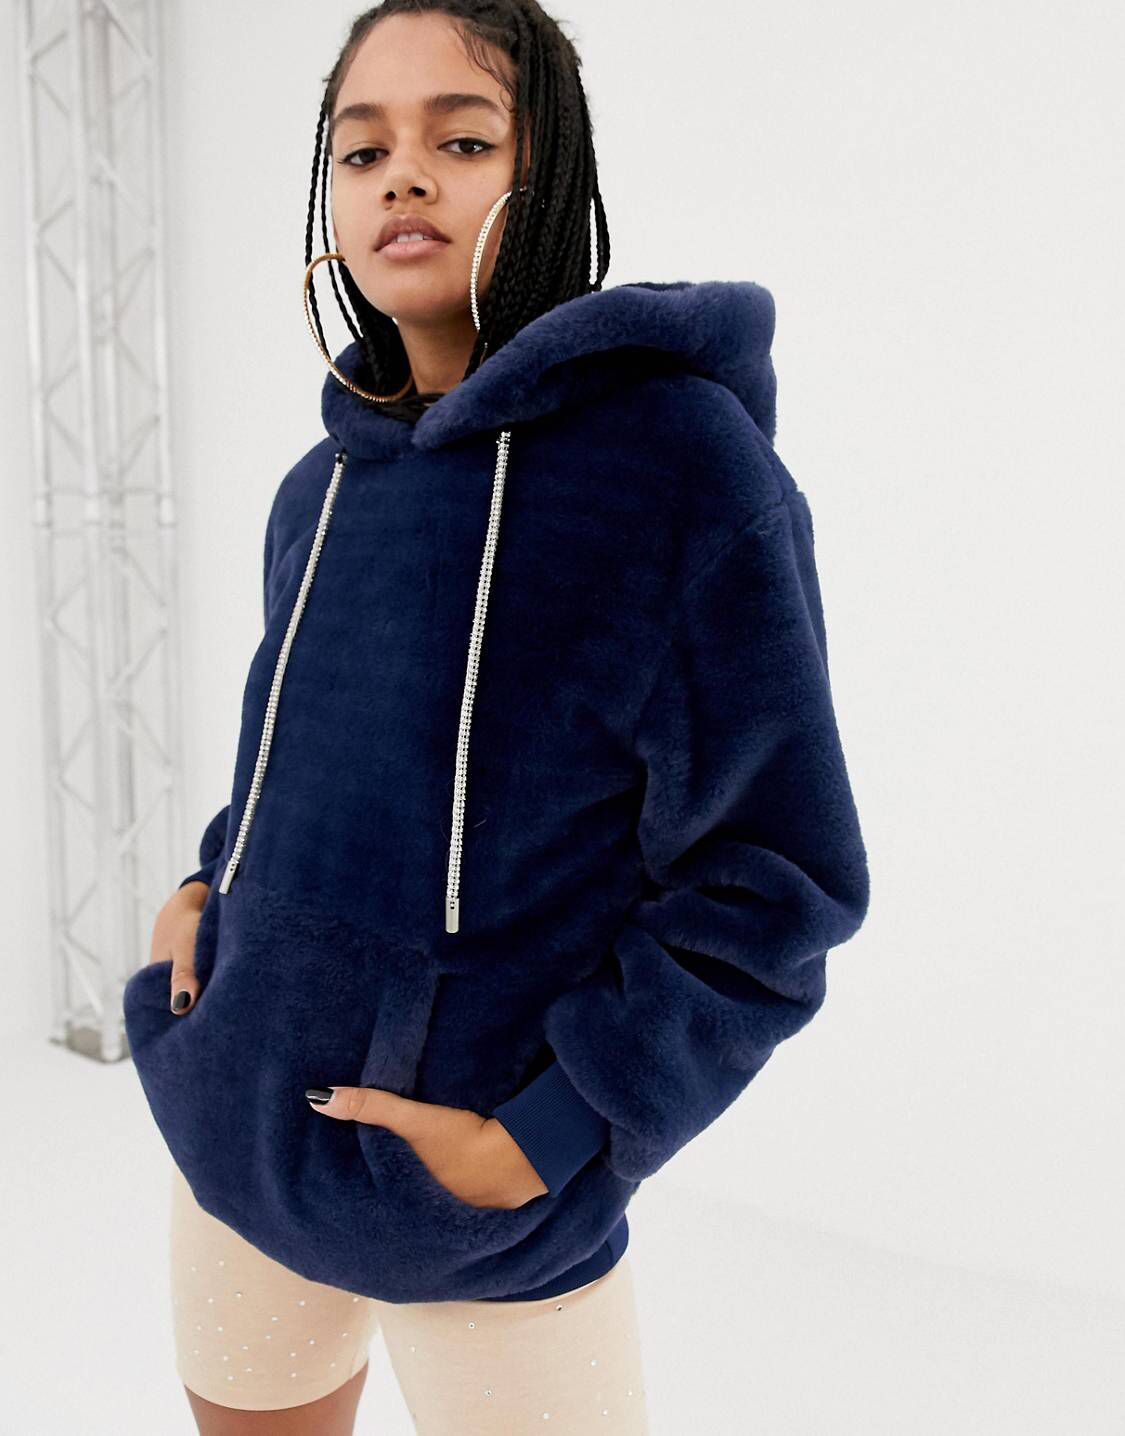 21 New Pieces Our Fashion Friends Are Losing It Over Right Now 21 New Pieces Our Fashion Friends Are Losing It Over Right Now new pics